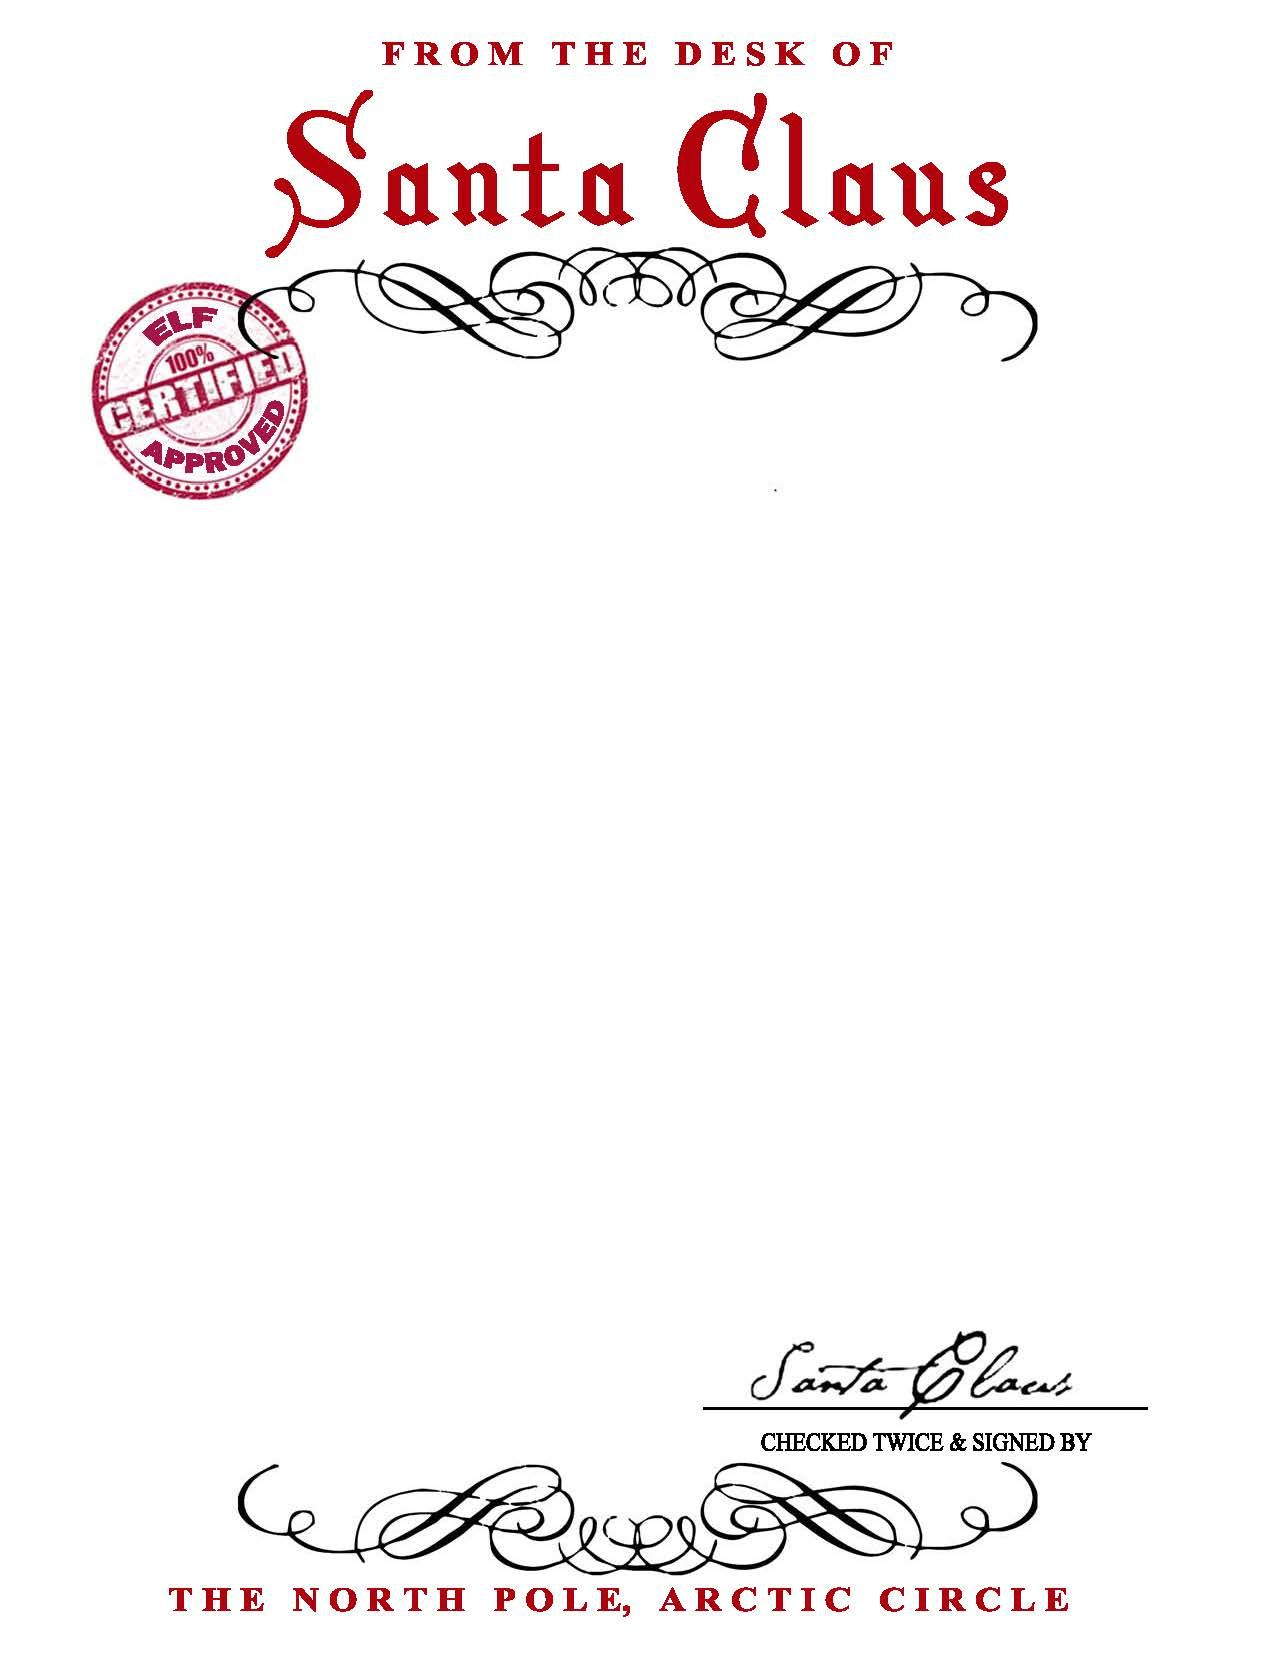 Free Printable Letter From Santa Word Template - Santa Claus Letterhead Will Bring Lots Of Joy to Children